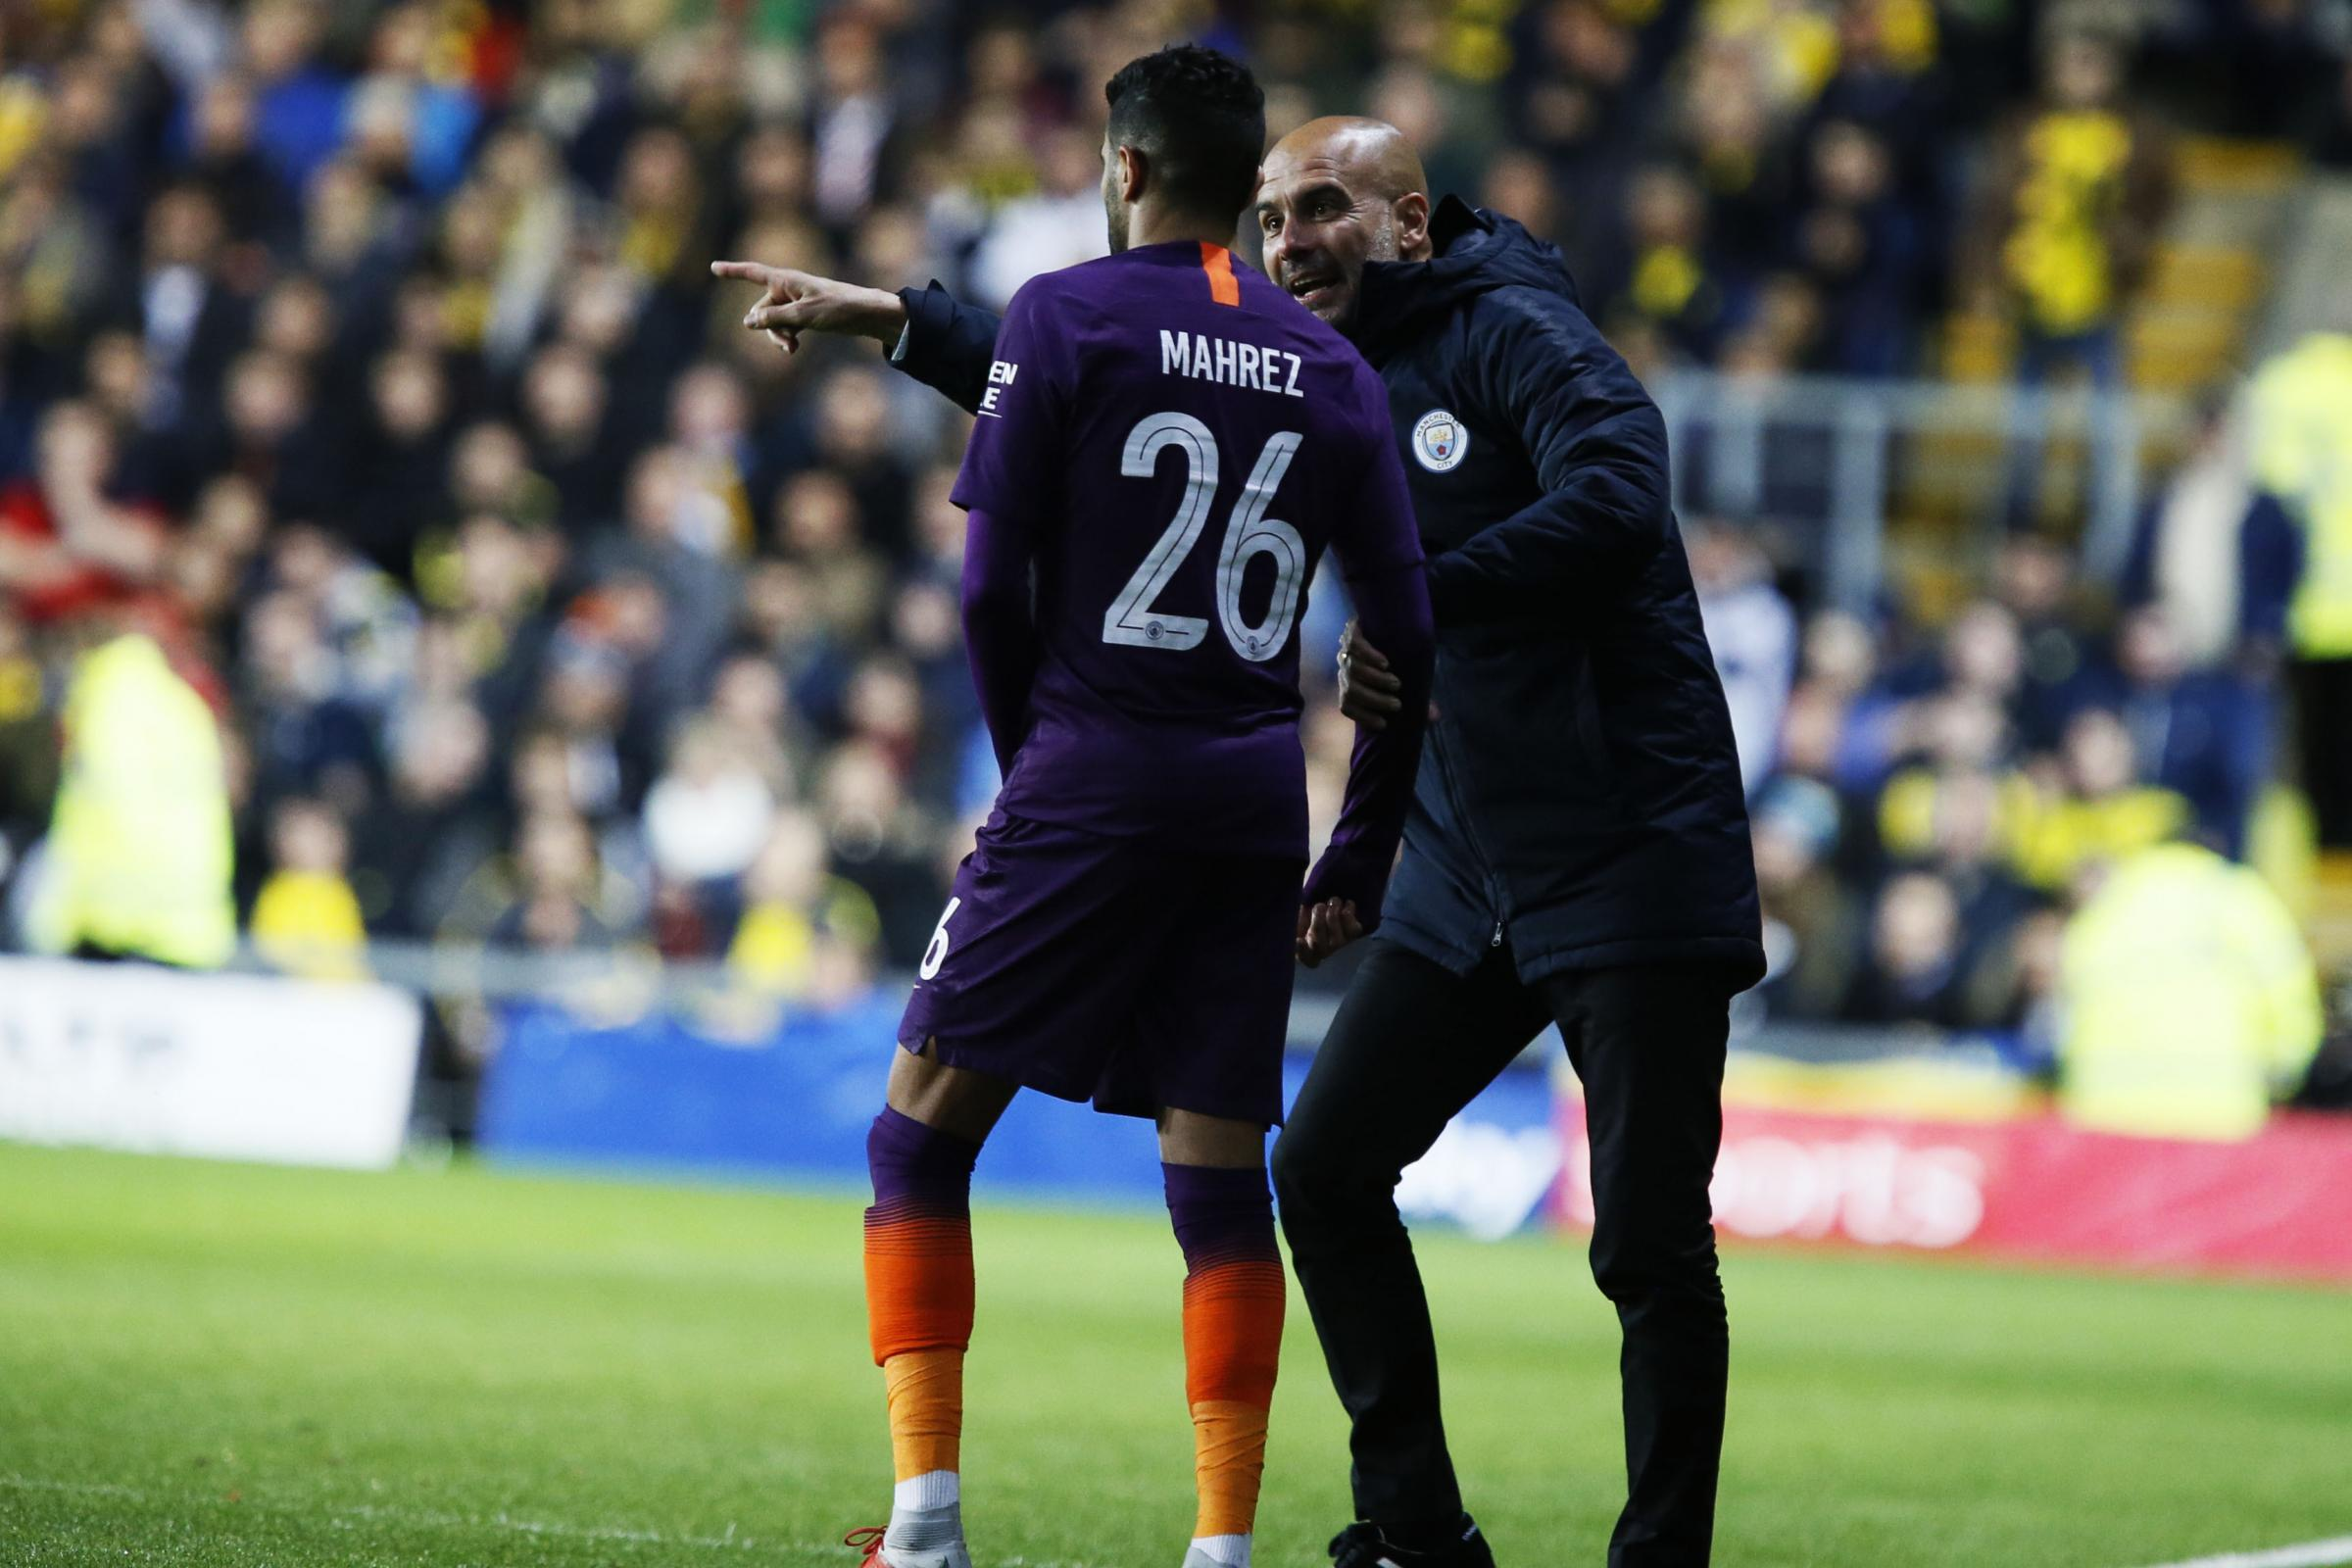 Oxford United v Manchester City: Danilo in line for City return